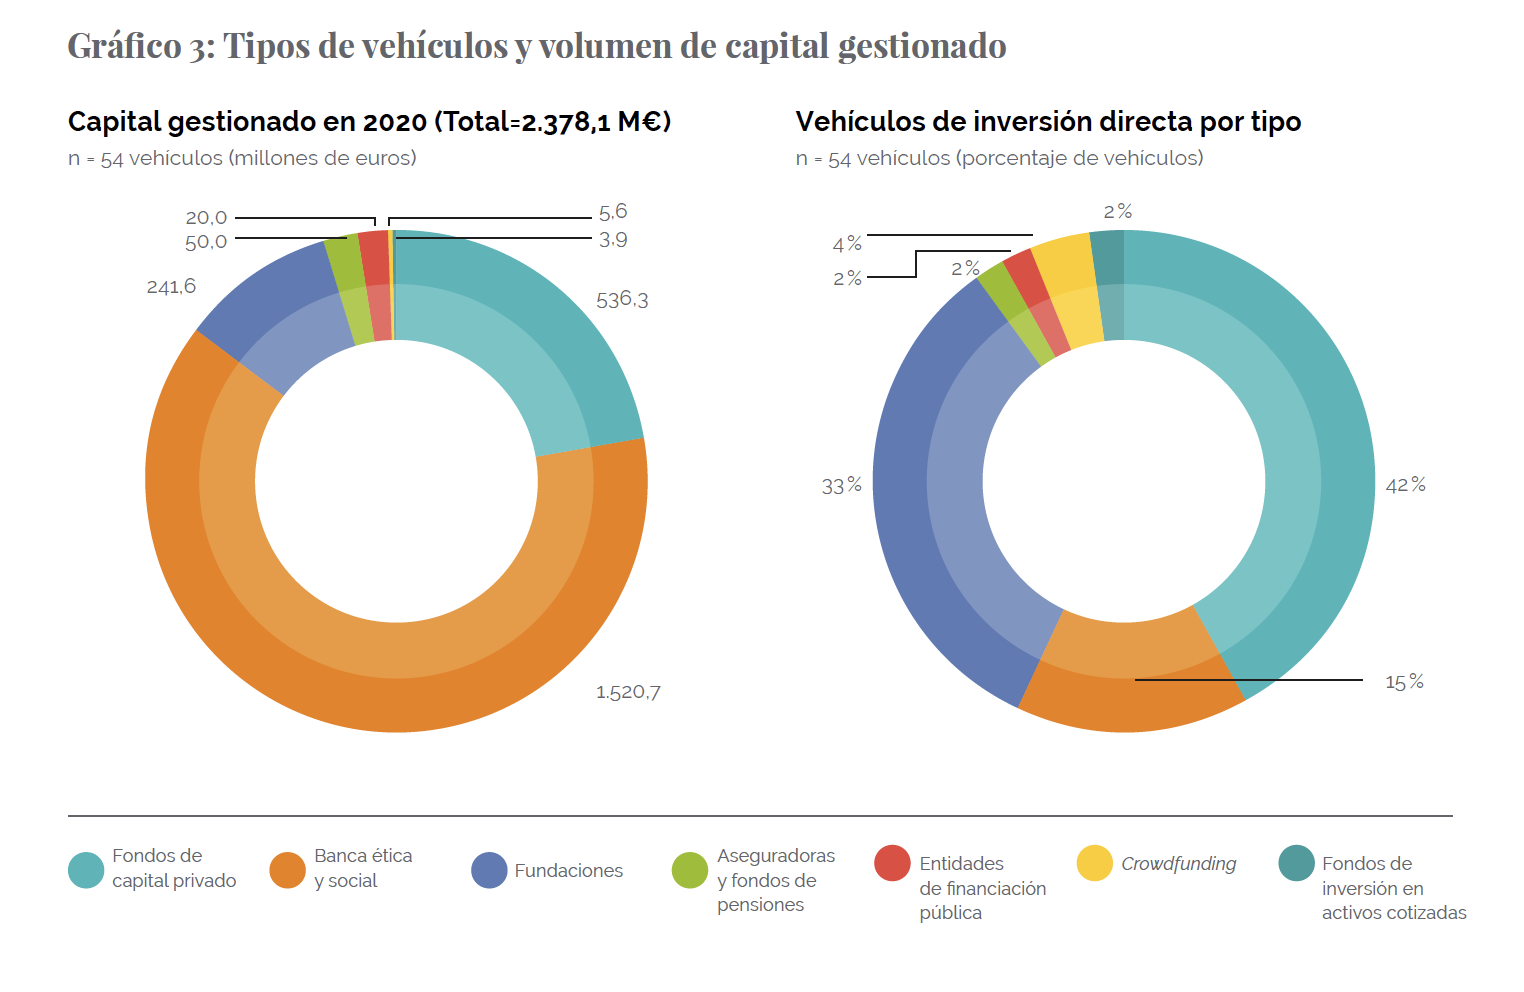 Impact investors and investment vehicles in Spain in 2020